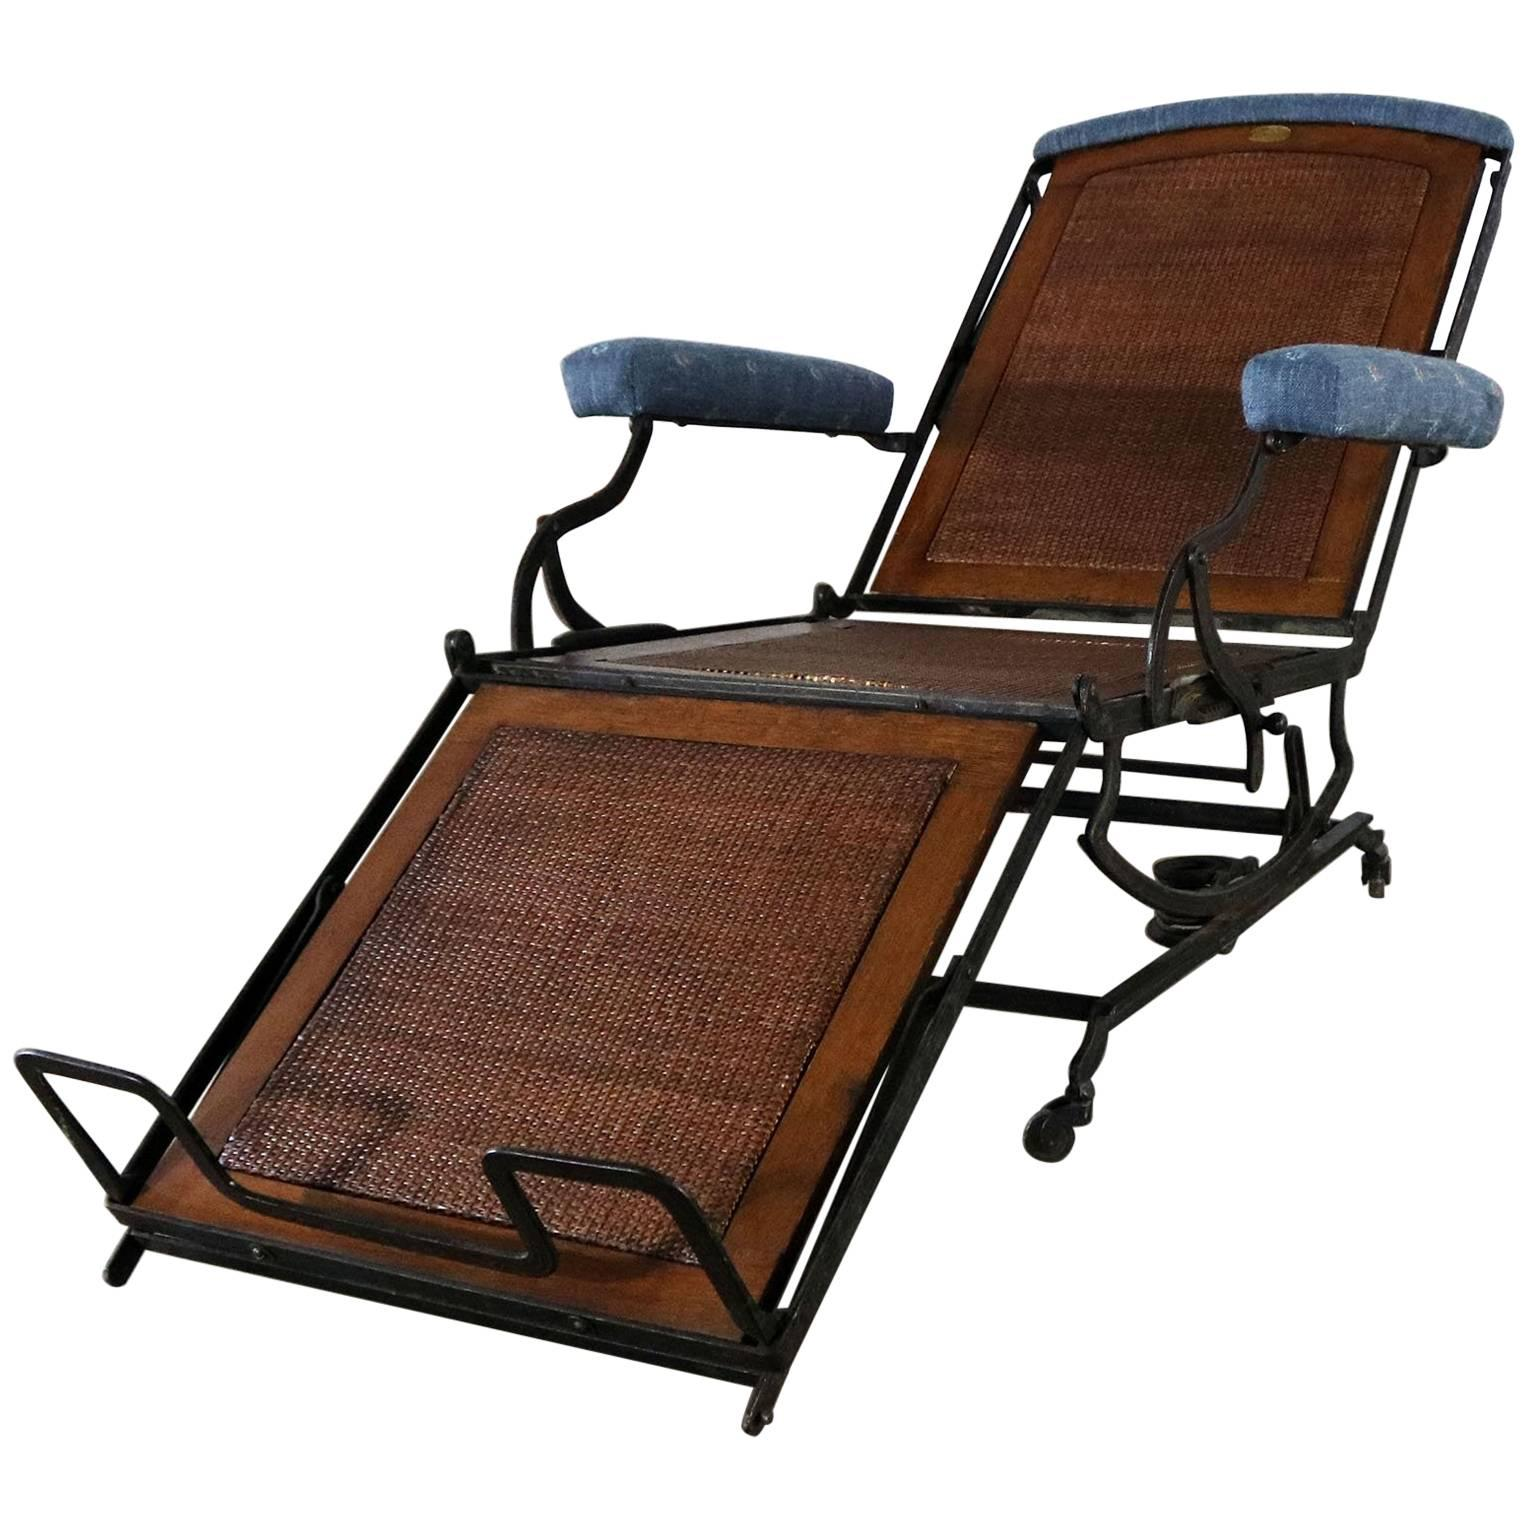 Marks Adjustable Folding Chair Company C&aign Style Invalid Deck Chair  sc 1 st  1stDibs & Antique Folding Luxury Wood Steamer Deck Chair circa 1890 England ...